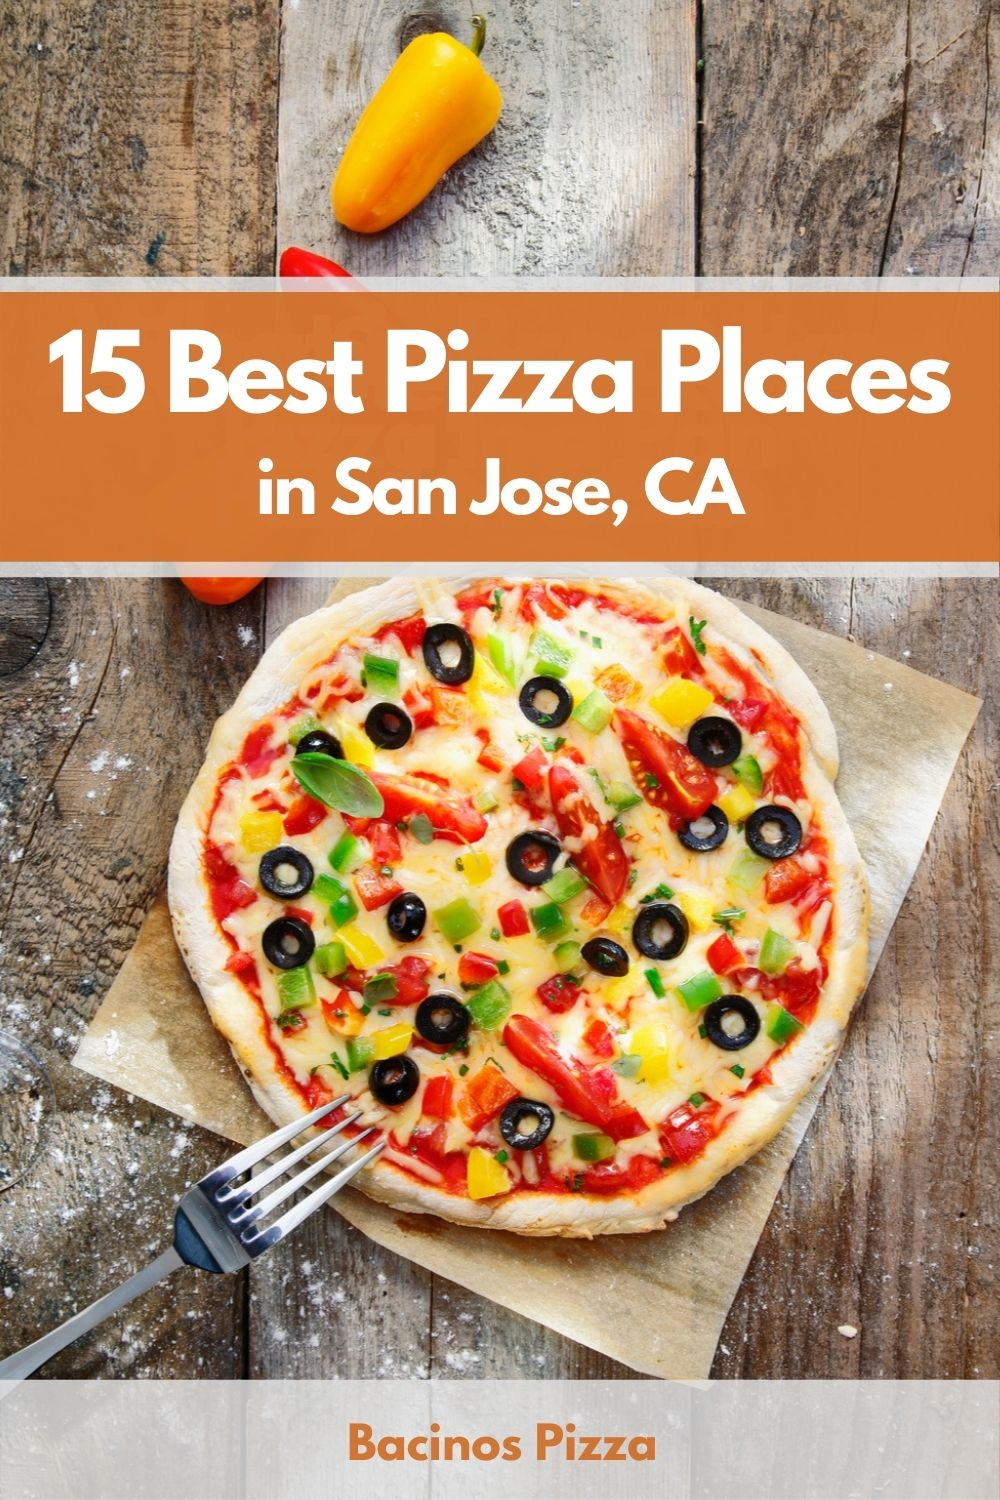 15 Best Pizza Places in San Jose, CA pin